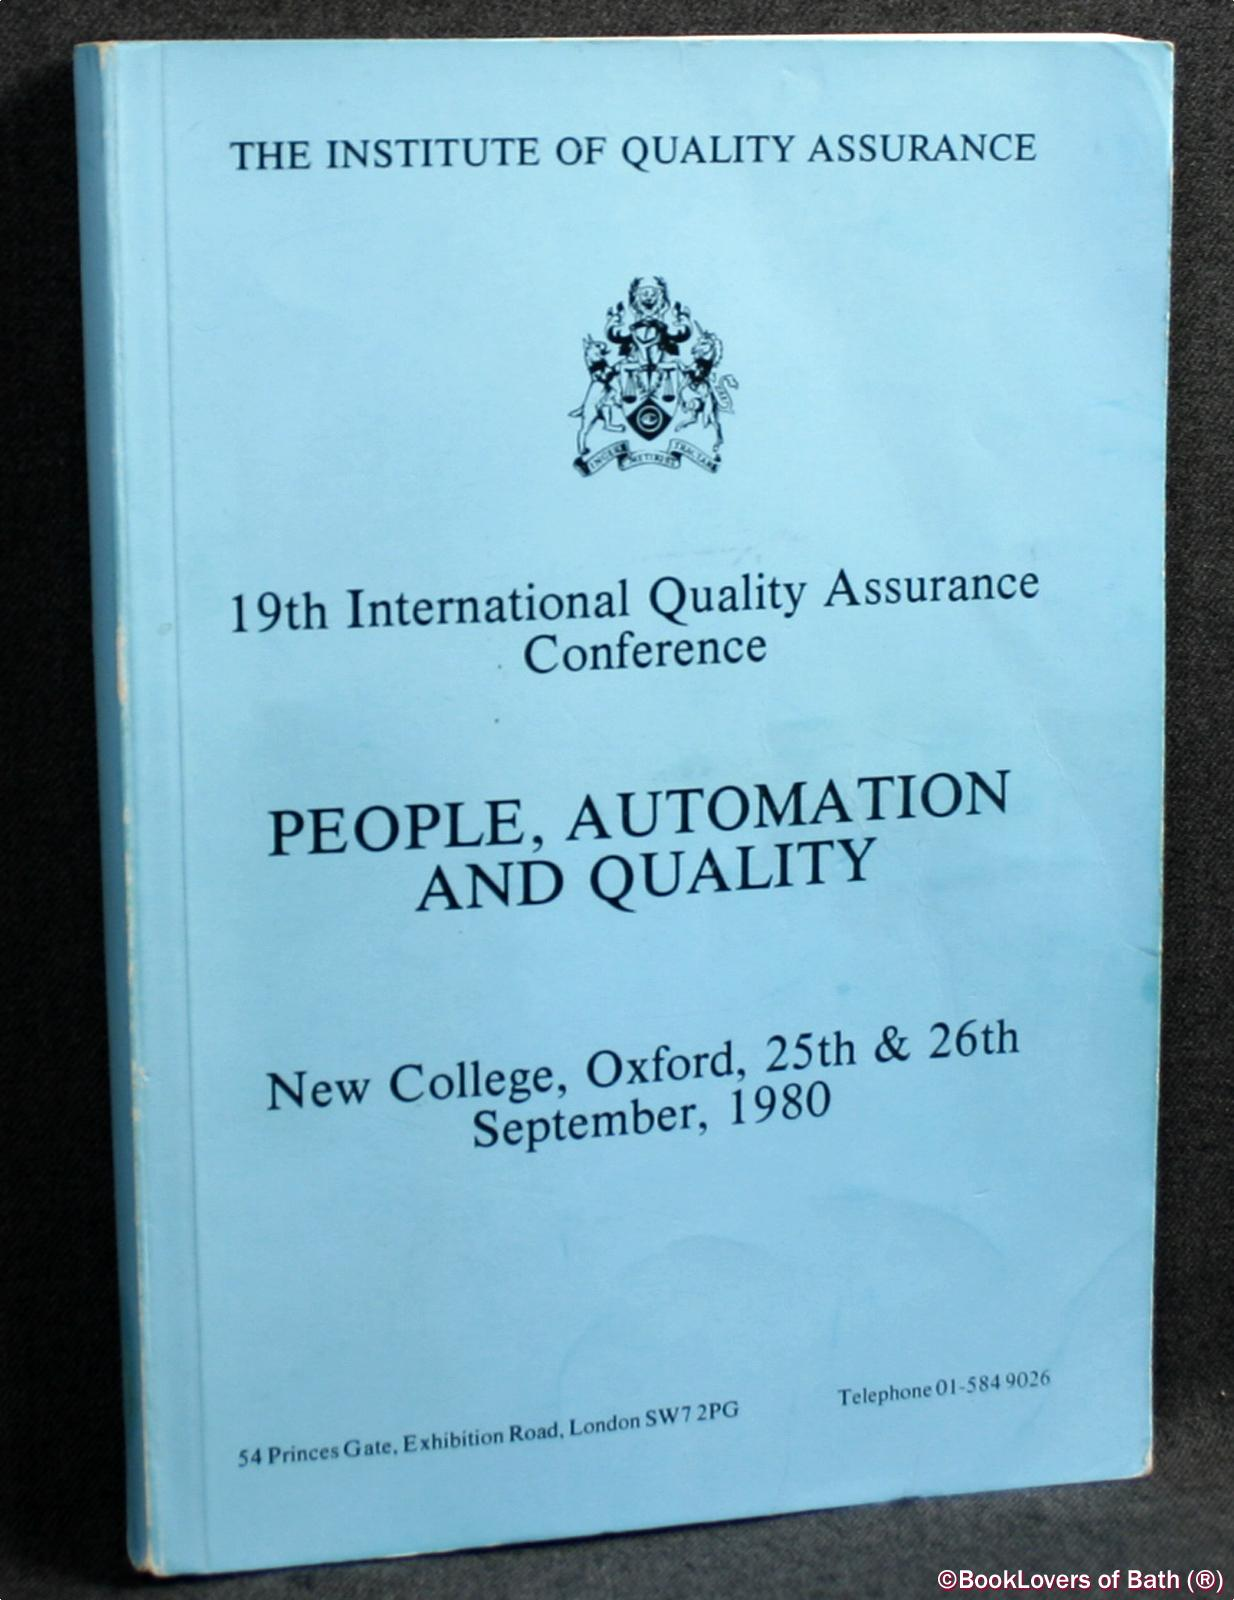 Proceedings Of The Institute Of Quality Assurance 19th International Quality Assurance Conference On People, Automation And Quality 25th and 26th September, 1980 New College, Oxford - Anon.